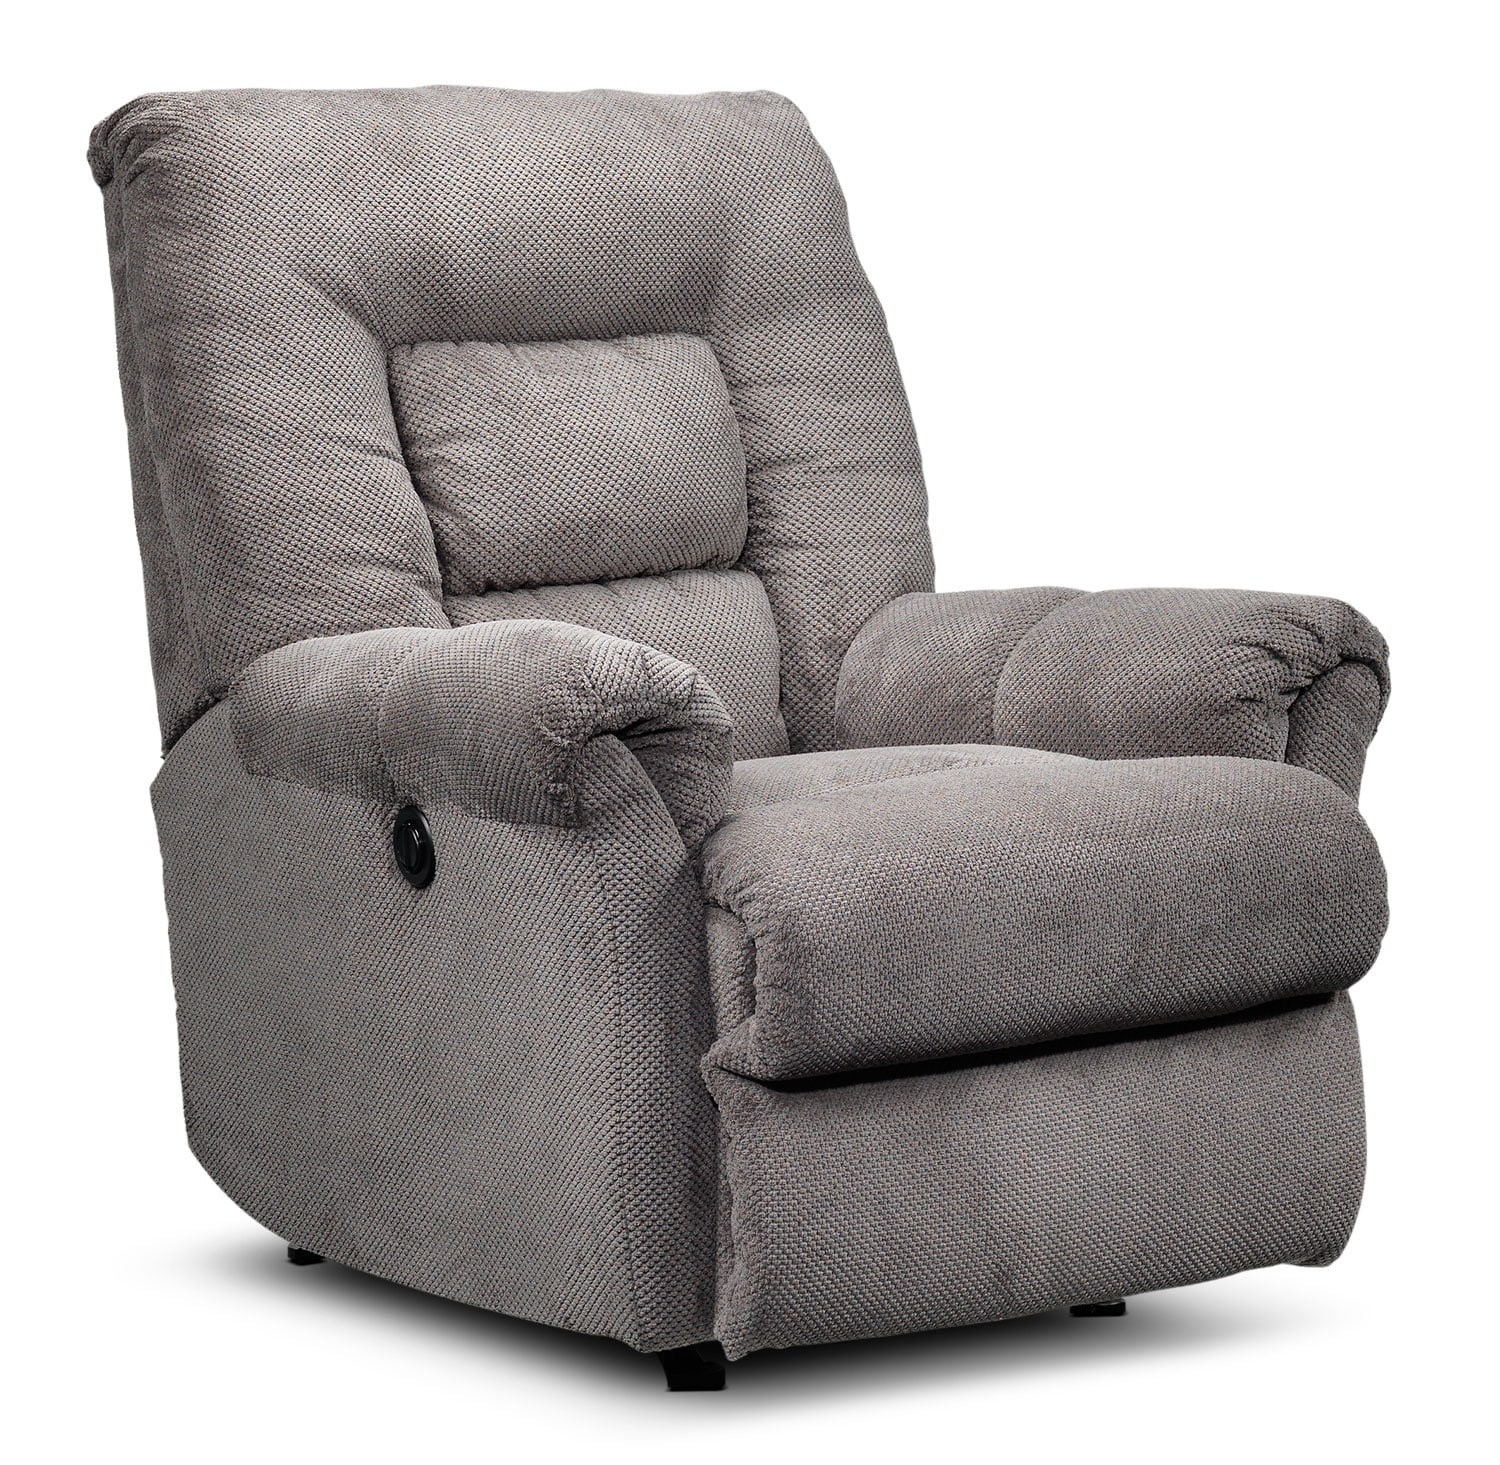 [Schmidt Power Recliner]